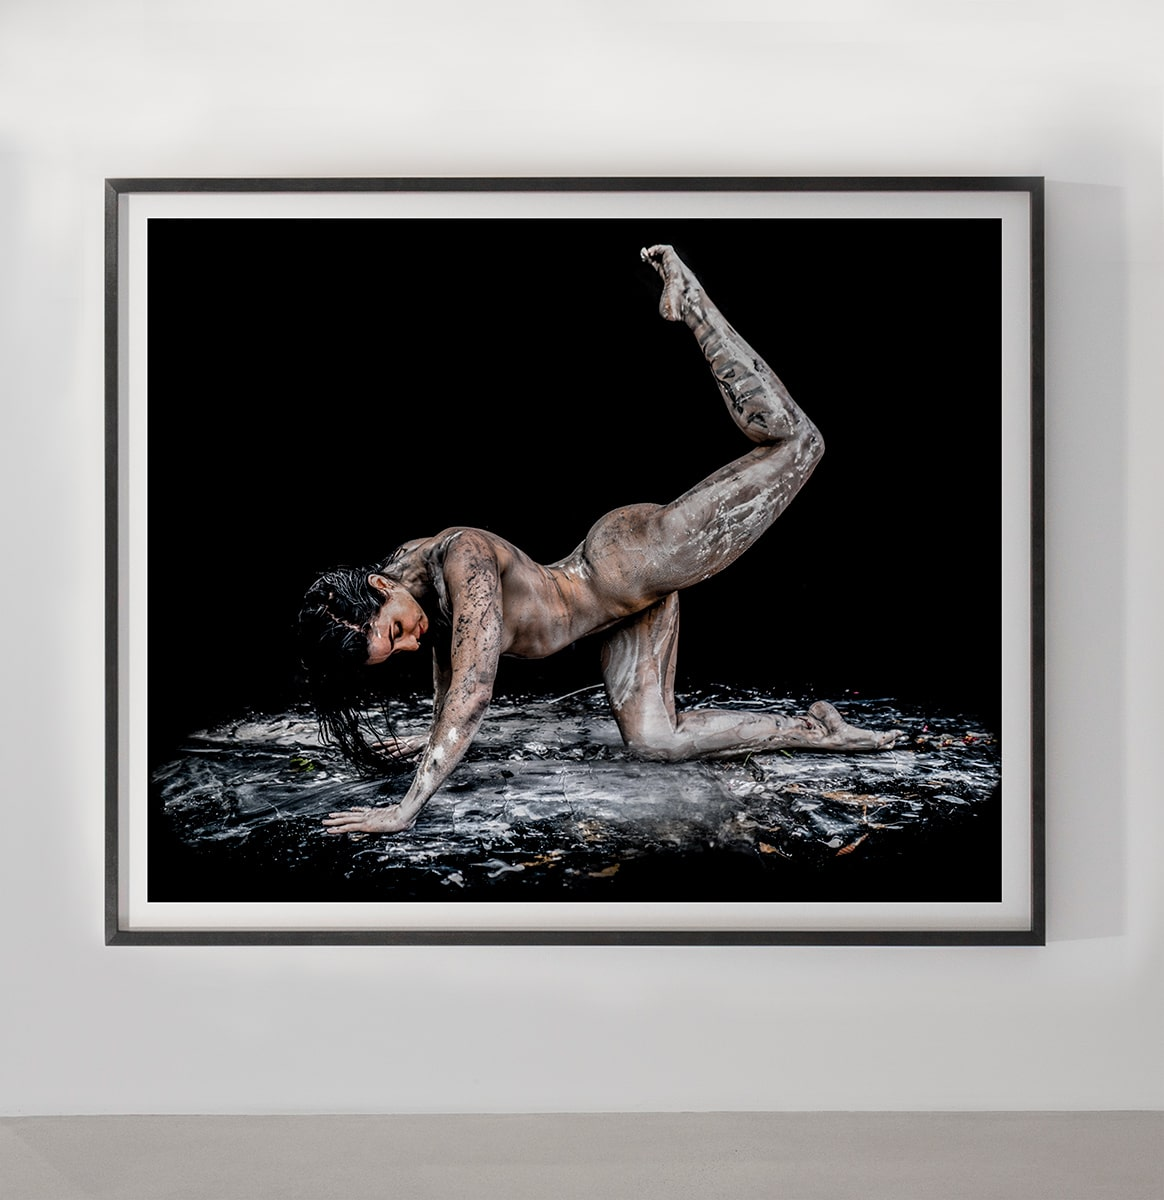 from the bodyworks series by gregory beylerian